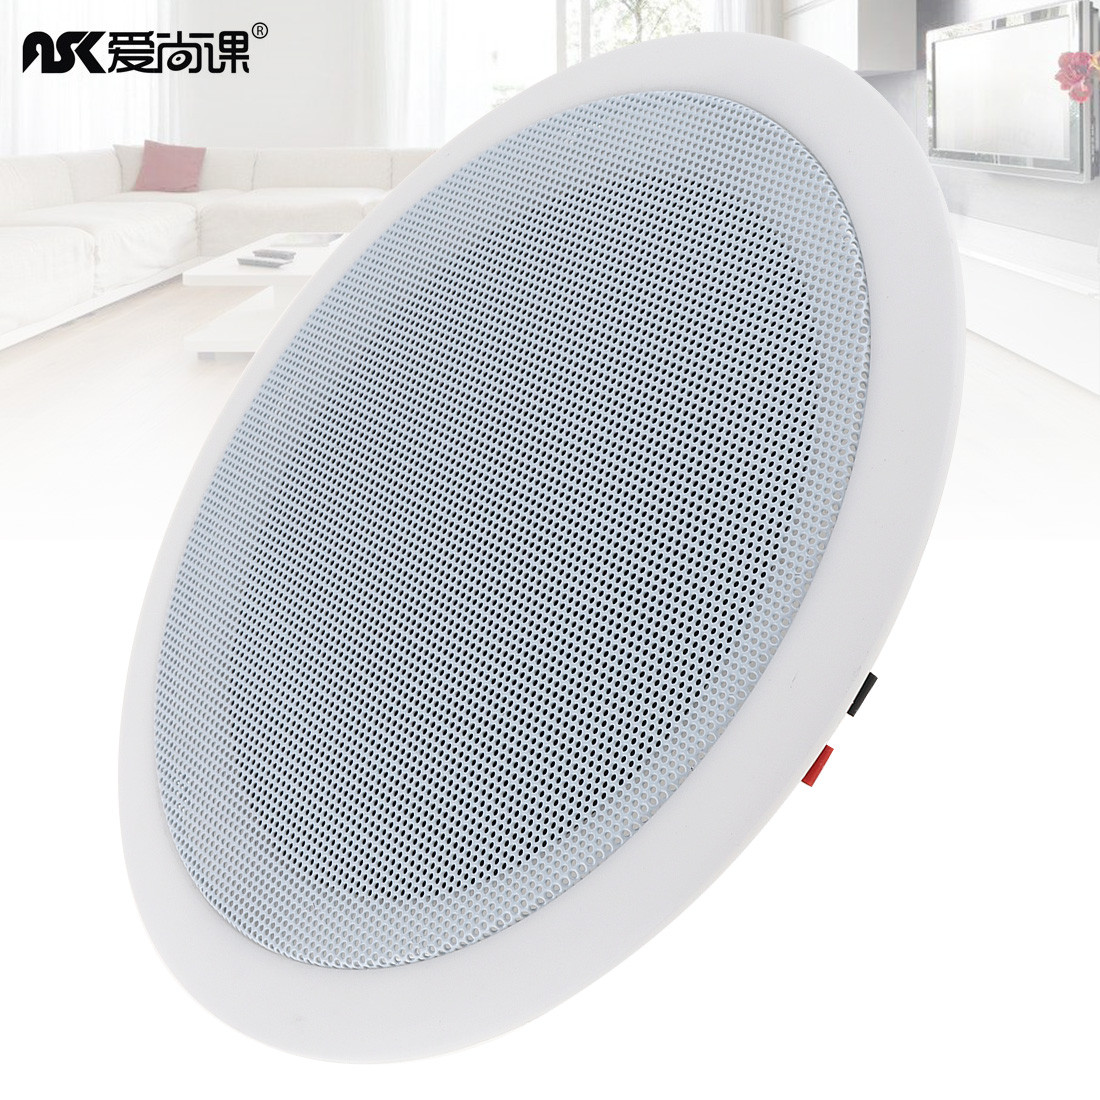 5 Inch 5W Fashion Input USB MP3 Player Ceiling Speaker Public Broadcast Background Music System Loudspeaker for Home Supermarket